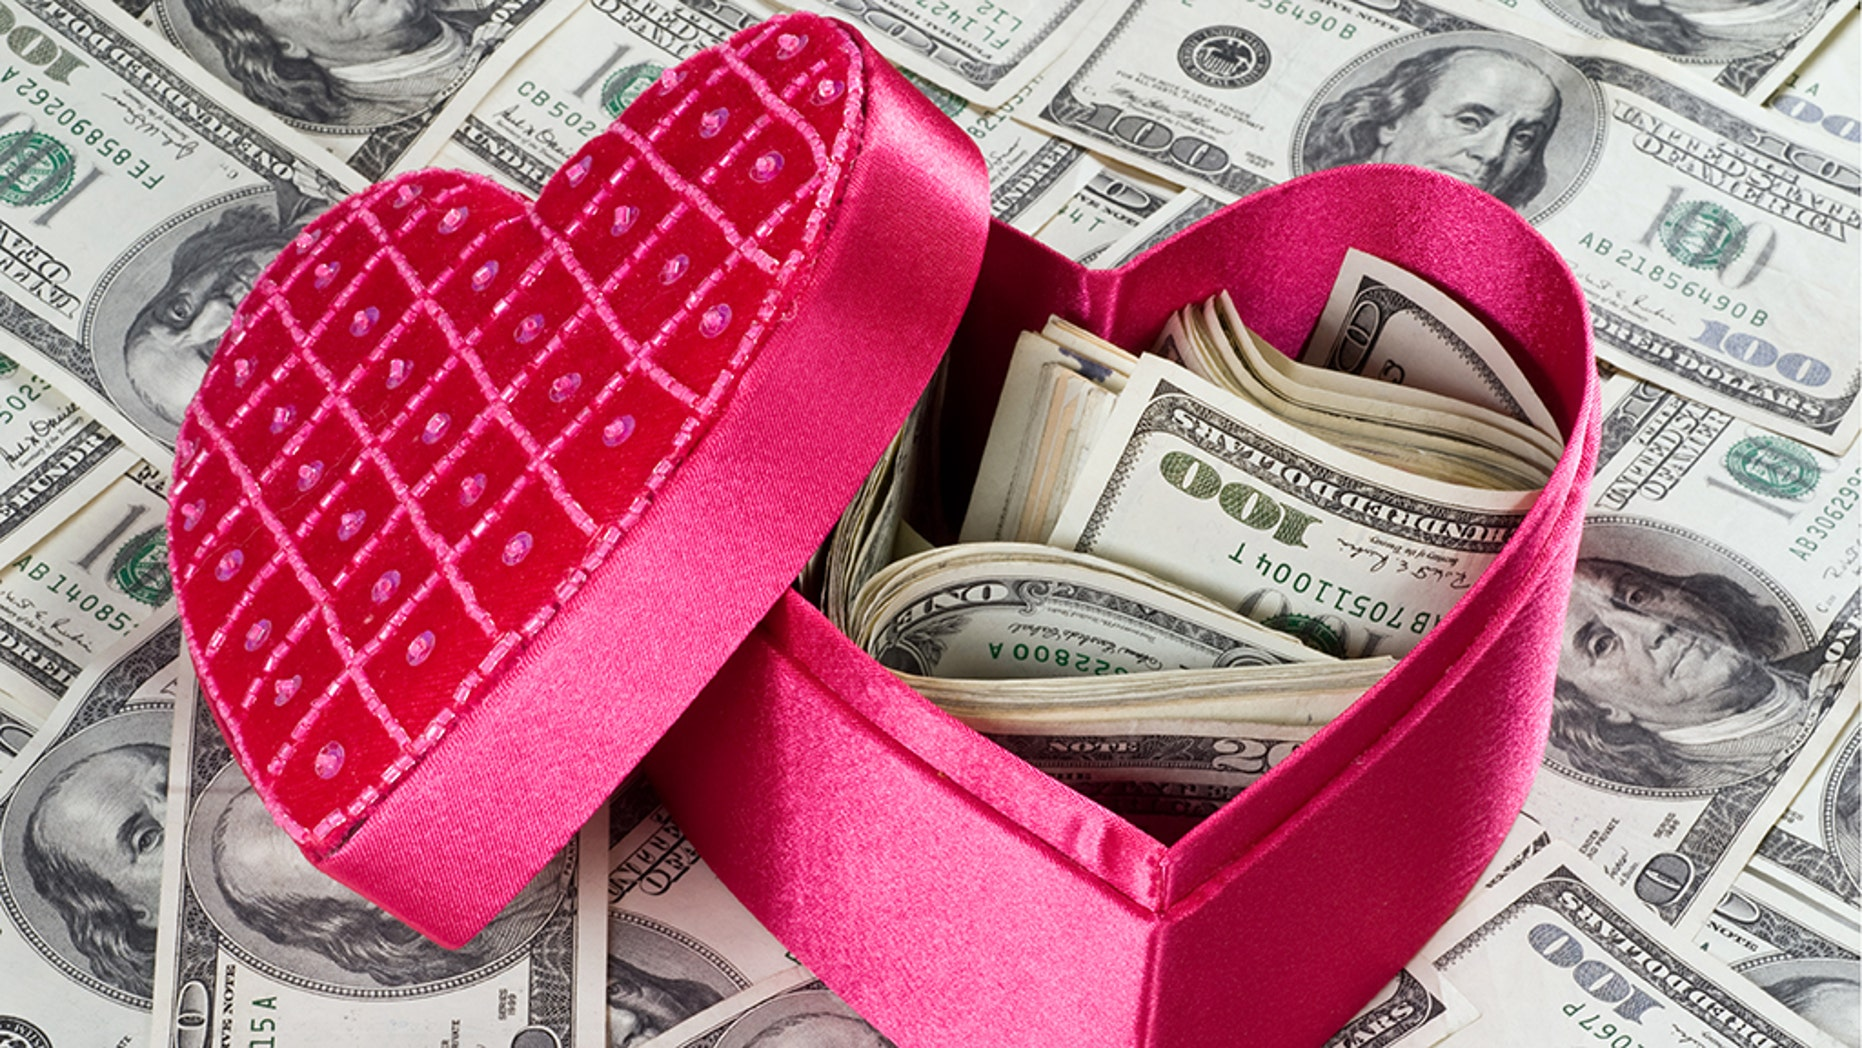 The FTC says romance-related scams have surged and generated more losses than any other consumer fraud reported last year. (iStock)